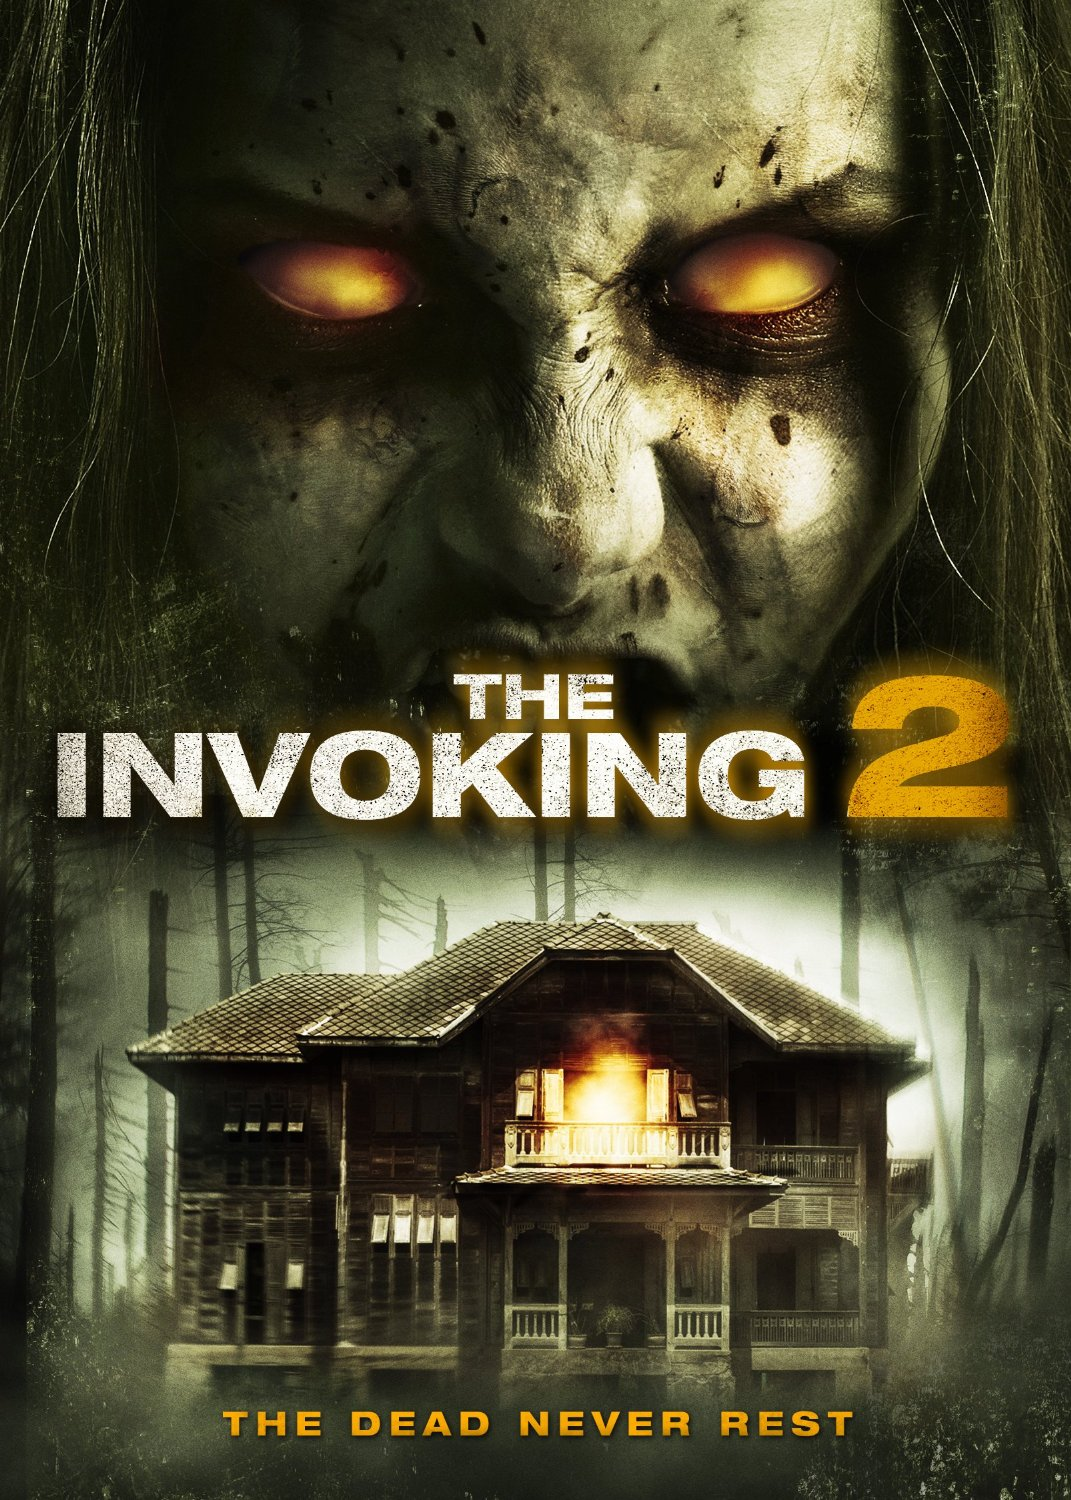 Watch Movie The Invoking 2